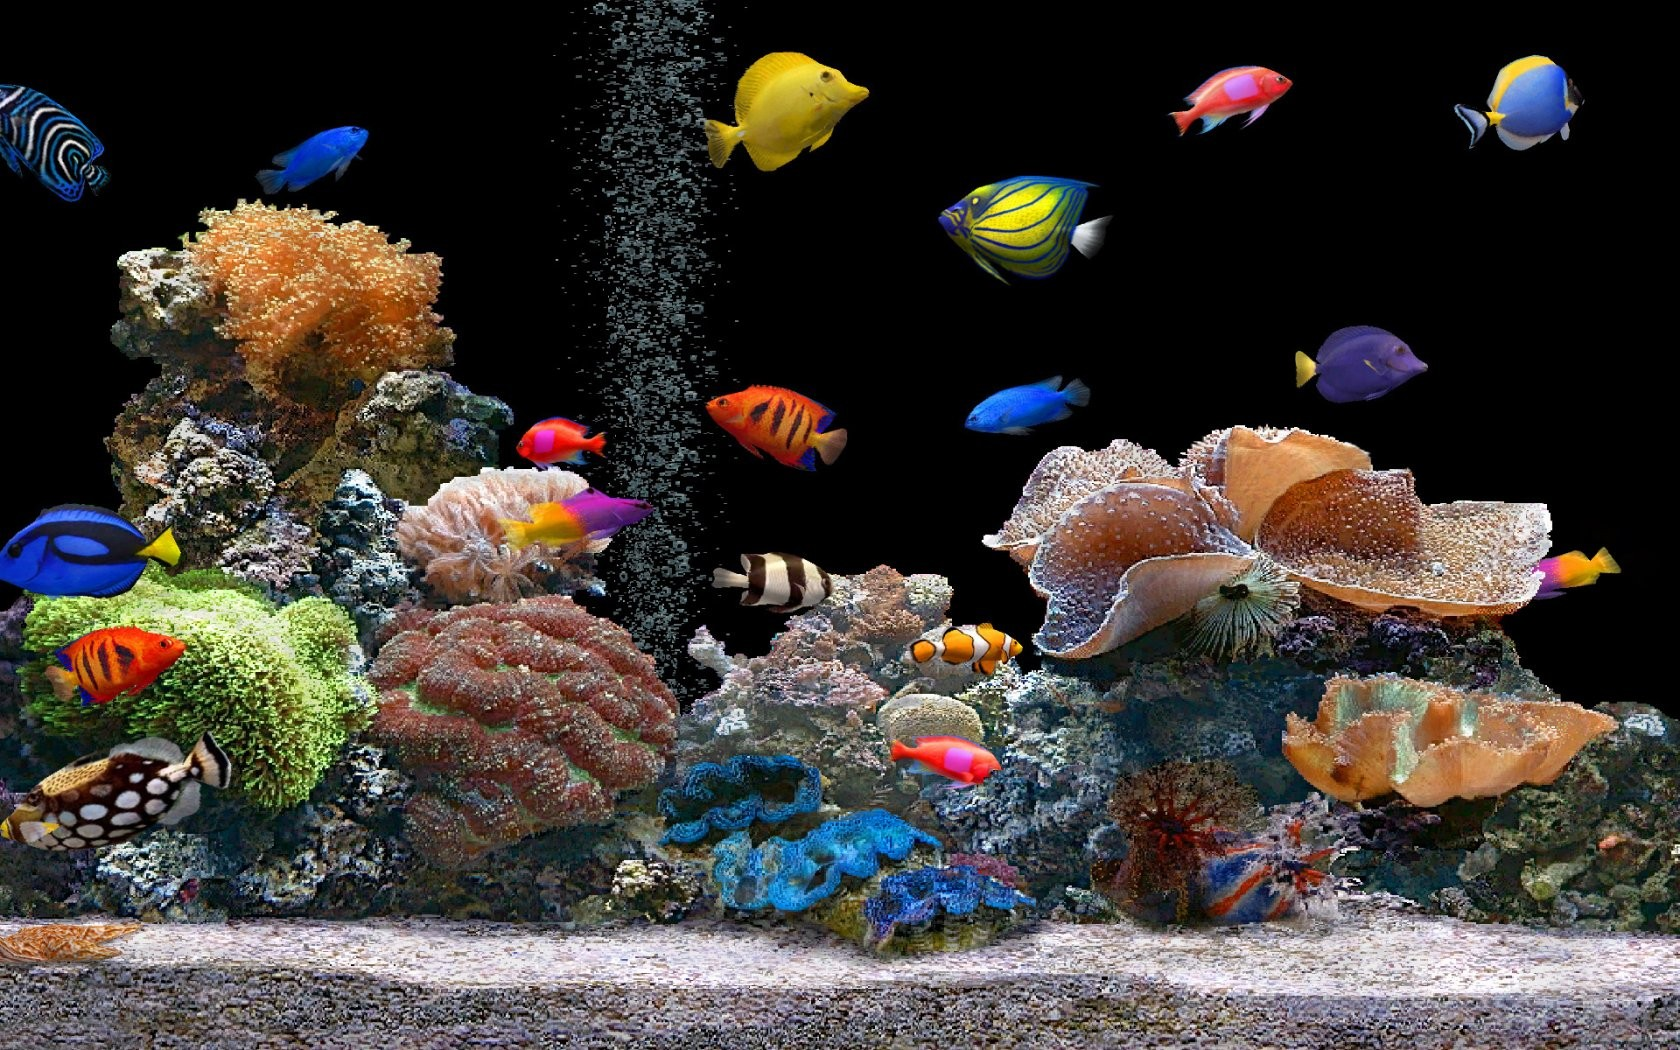 1680x1050 Aquarium desktop PC and Mac wallpaper